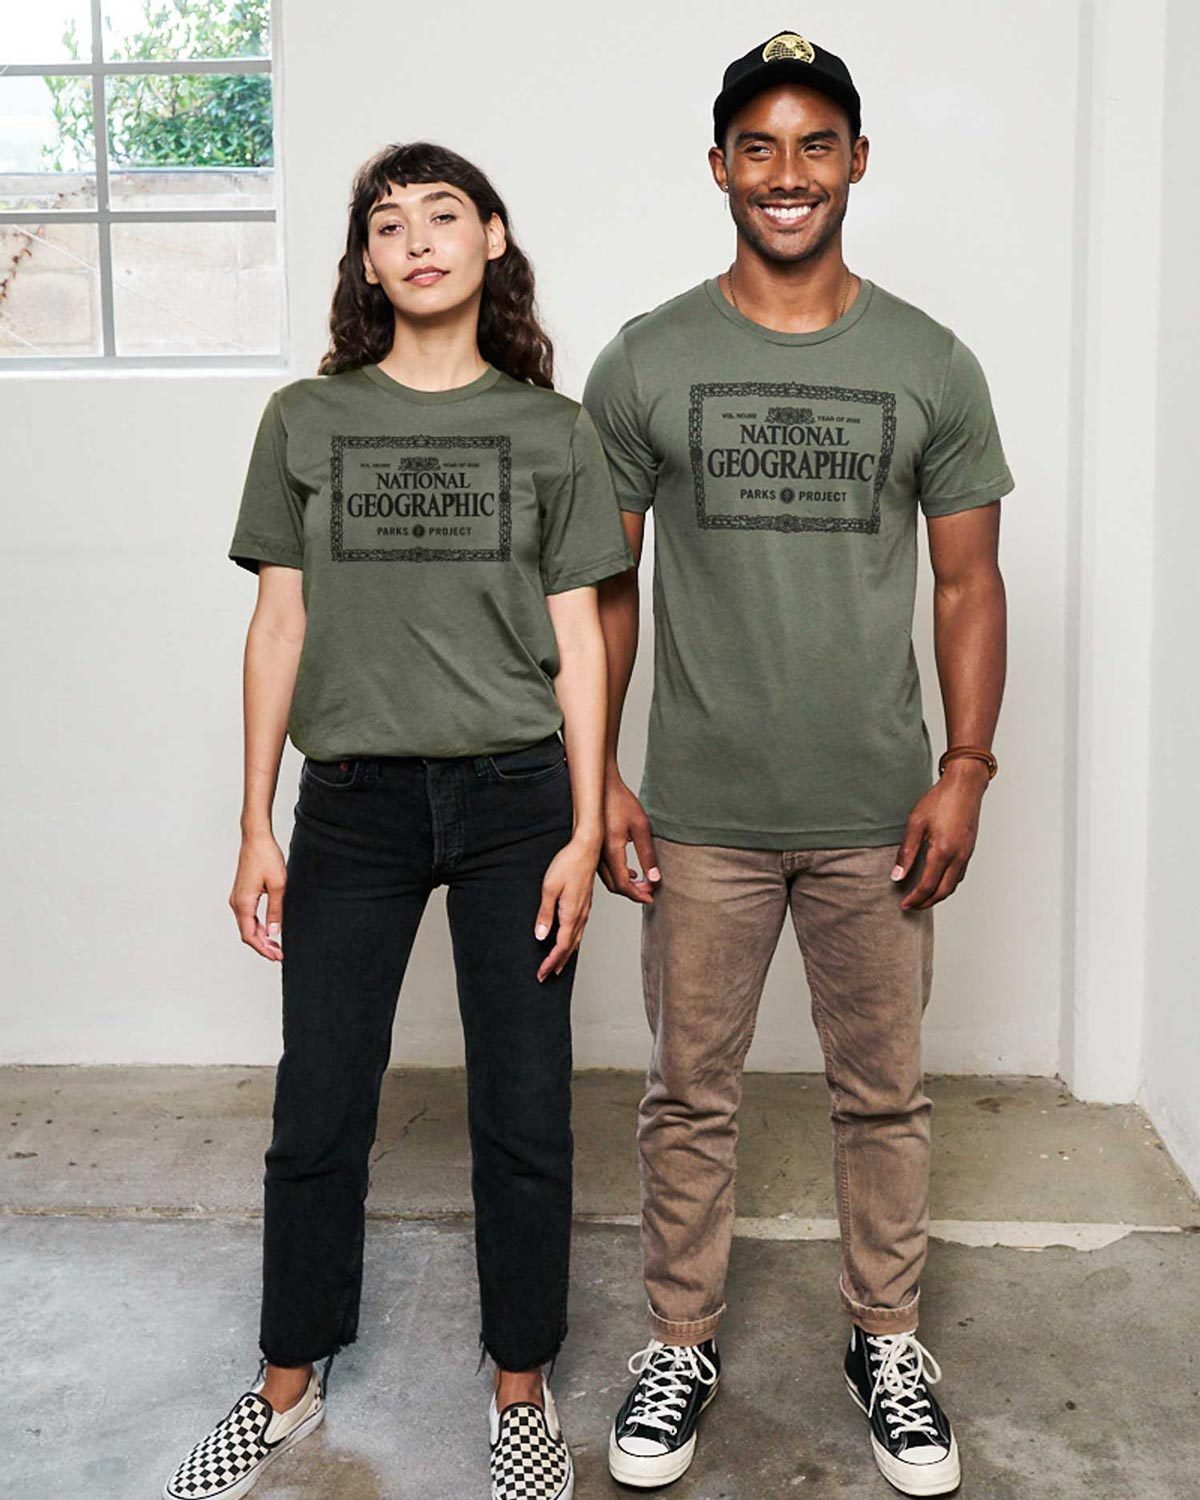 National Geographic x Parks Project Legacy Tee